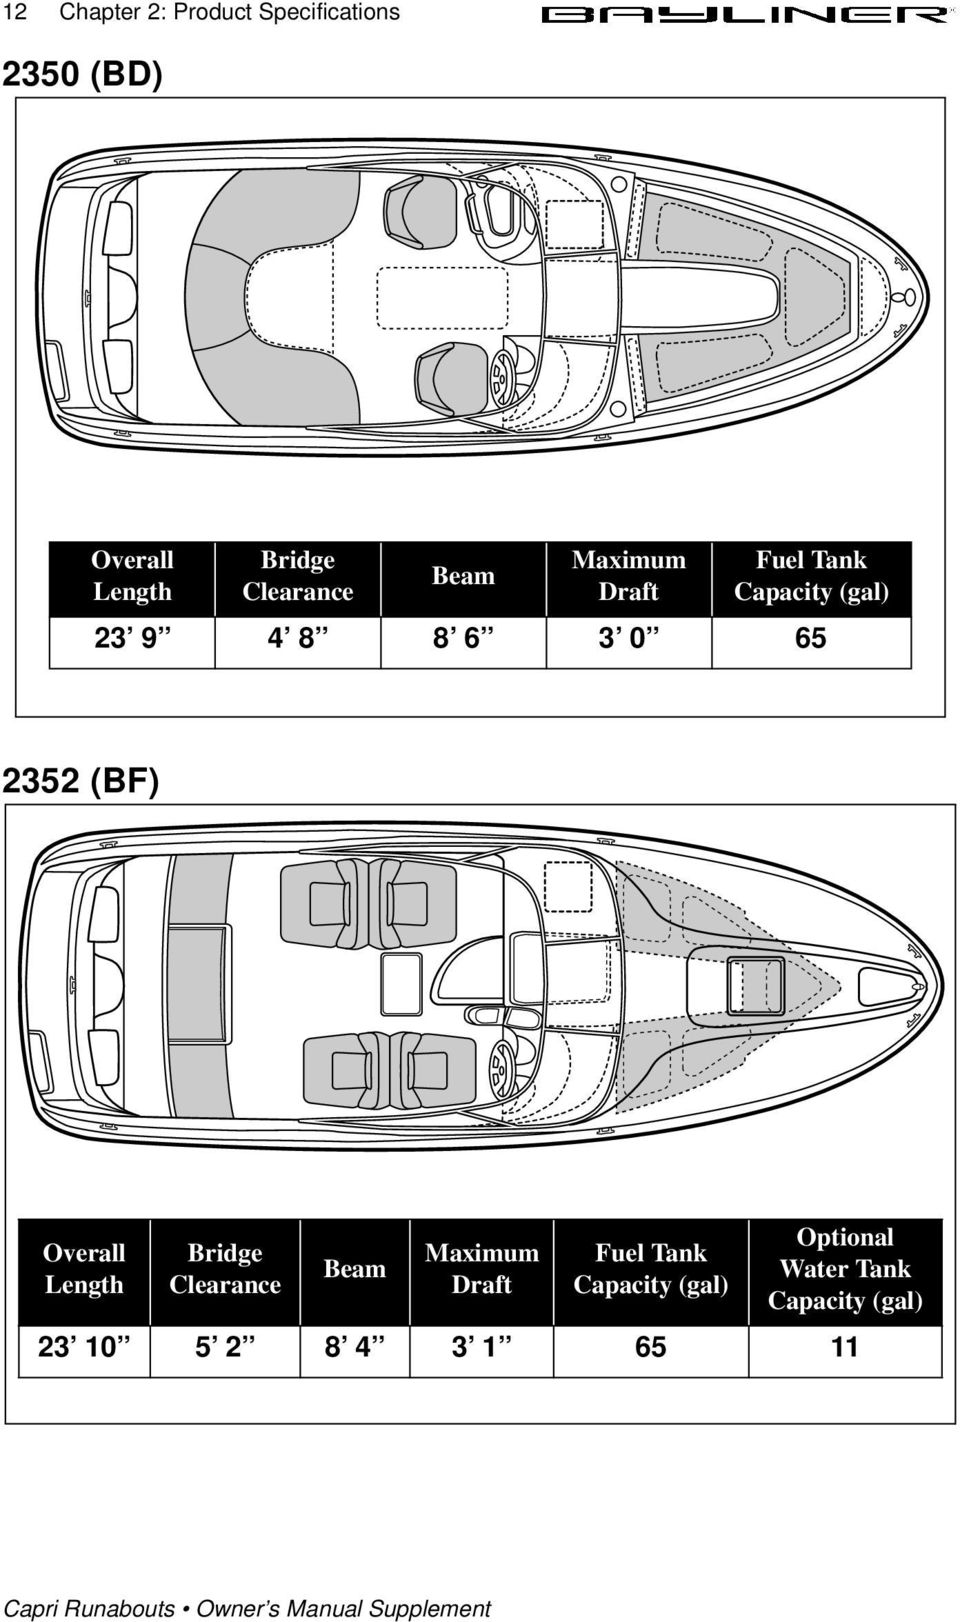 Engine Serial Number Pdf Boston Whaler Wiring Harness 65 2352 Bf Overall Length Bridge Clearance Beam Maximum Draft Fuel